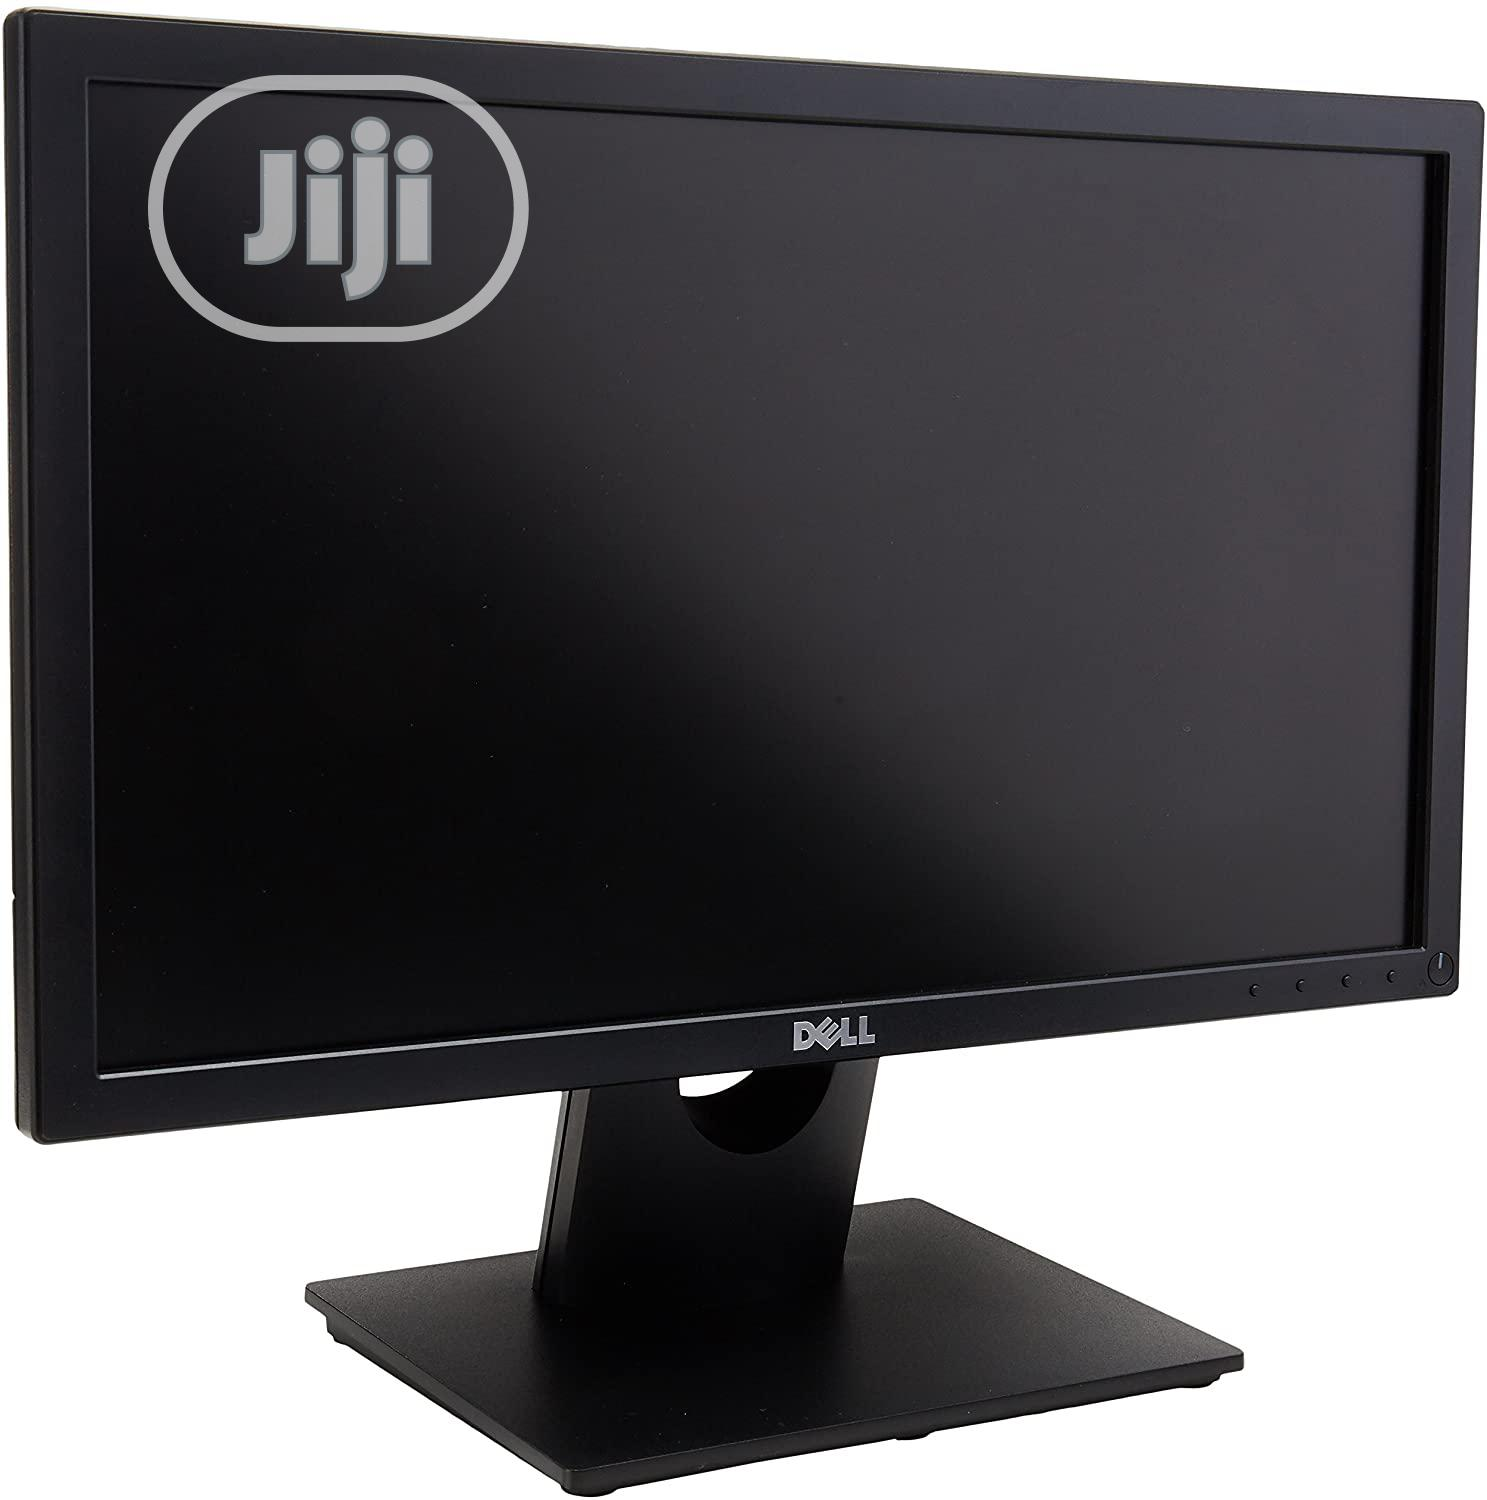 Dell 20 Monitor 19.5 Inches